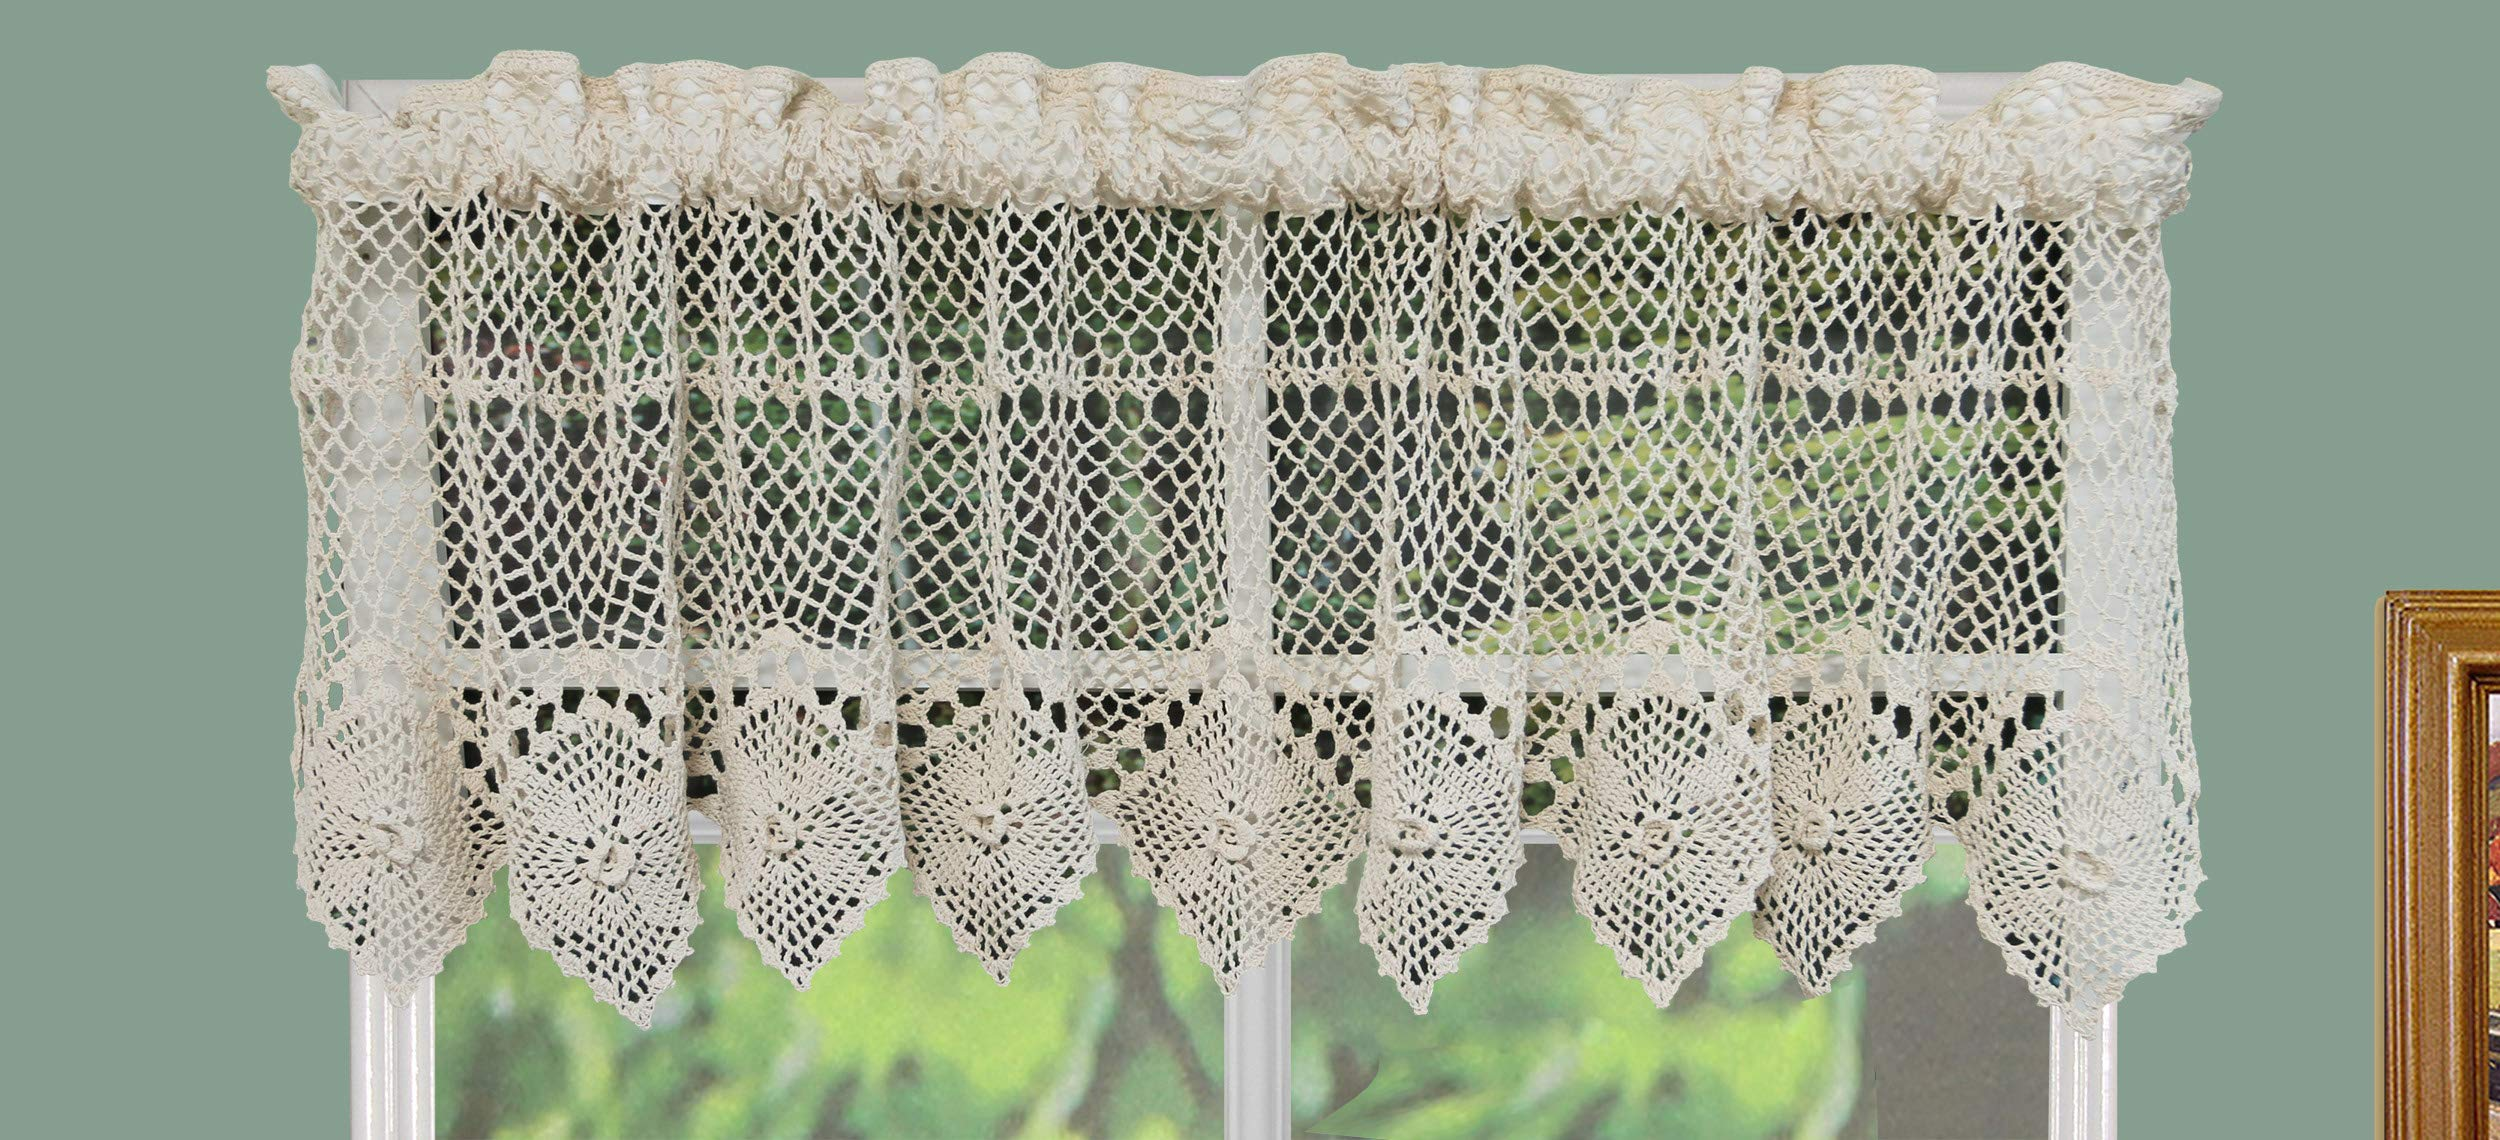 Creative Linens Cotton Crochet Lace Kitchen Curtain Valance Beige Handmade